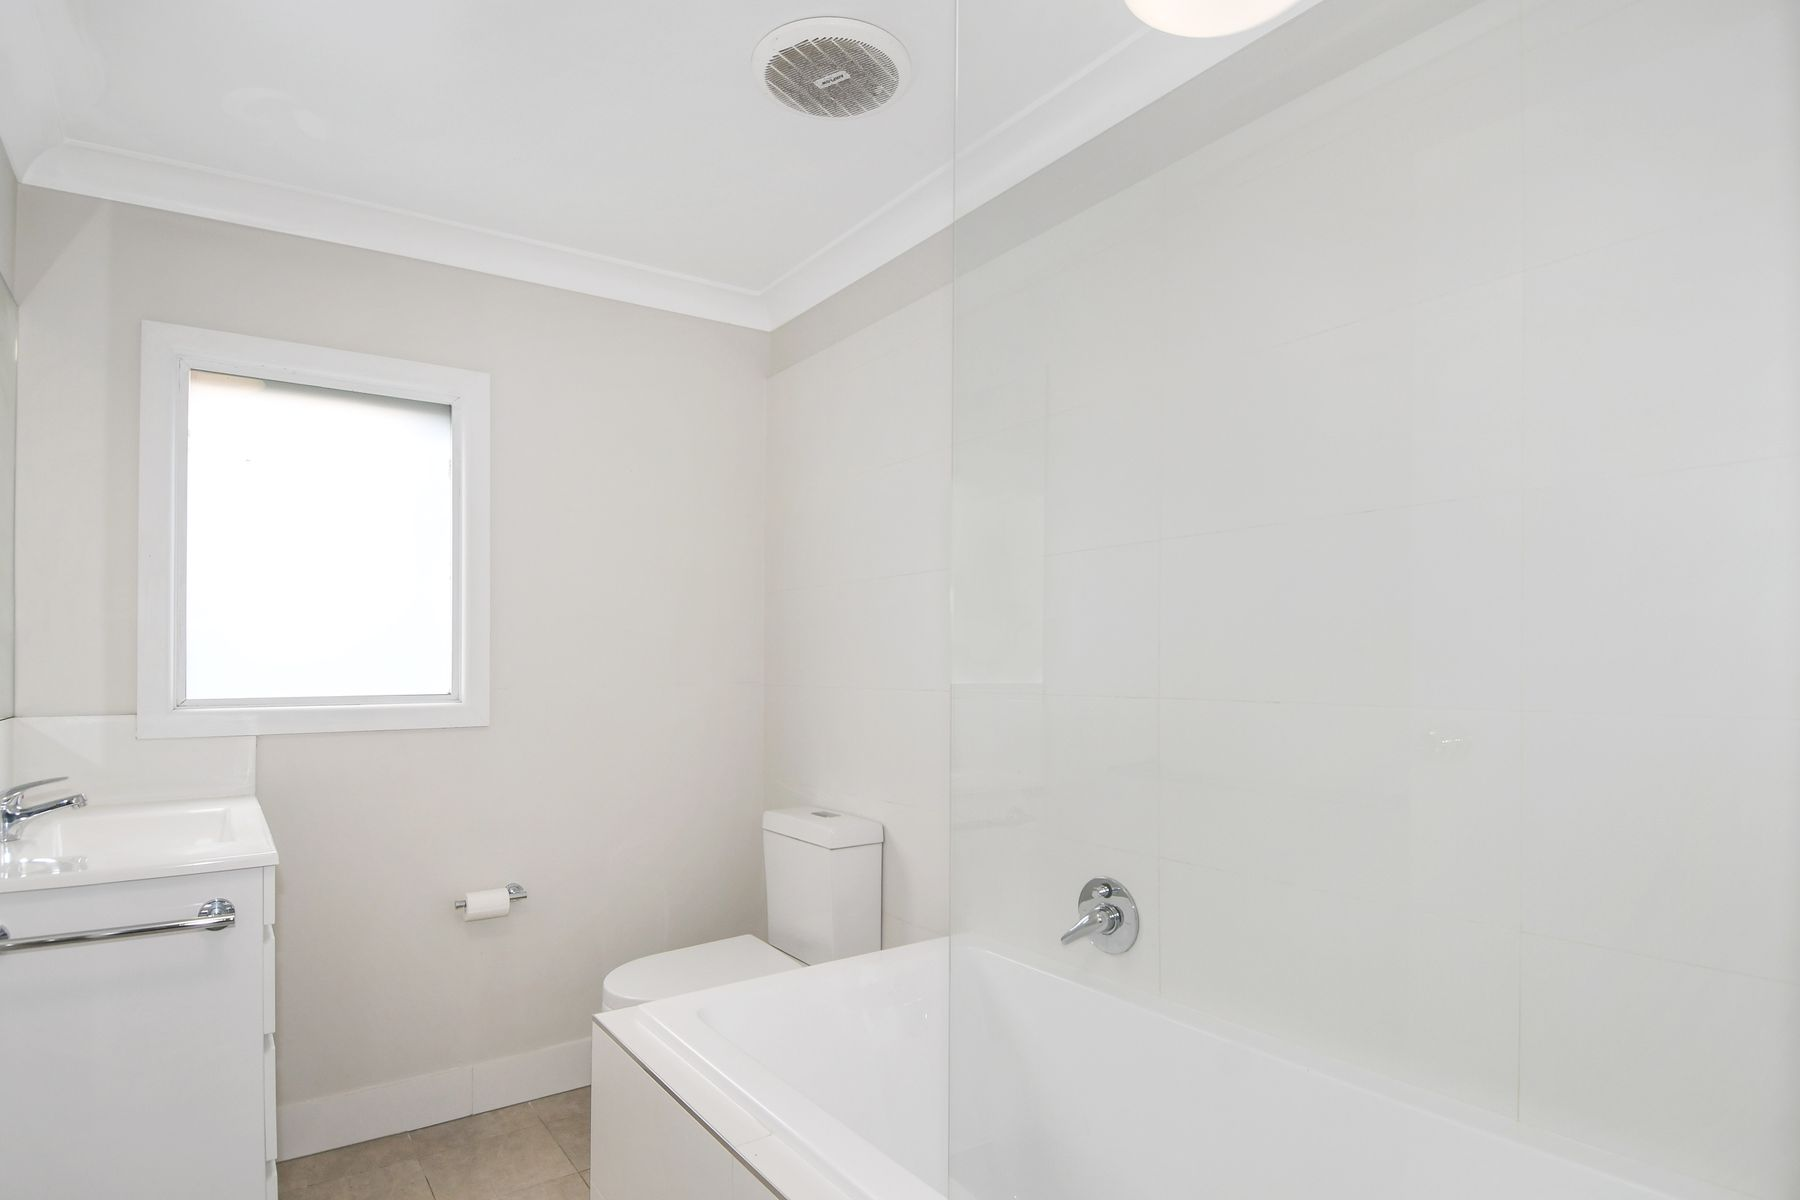 43 Seymour Street, Bathurst, NSW 2795